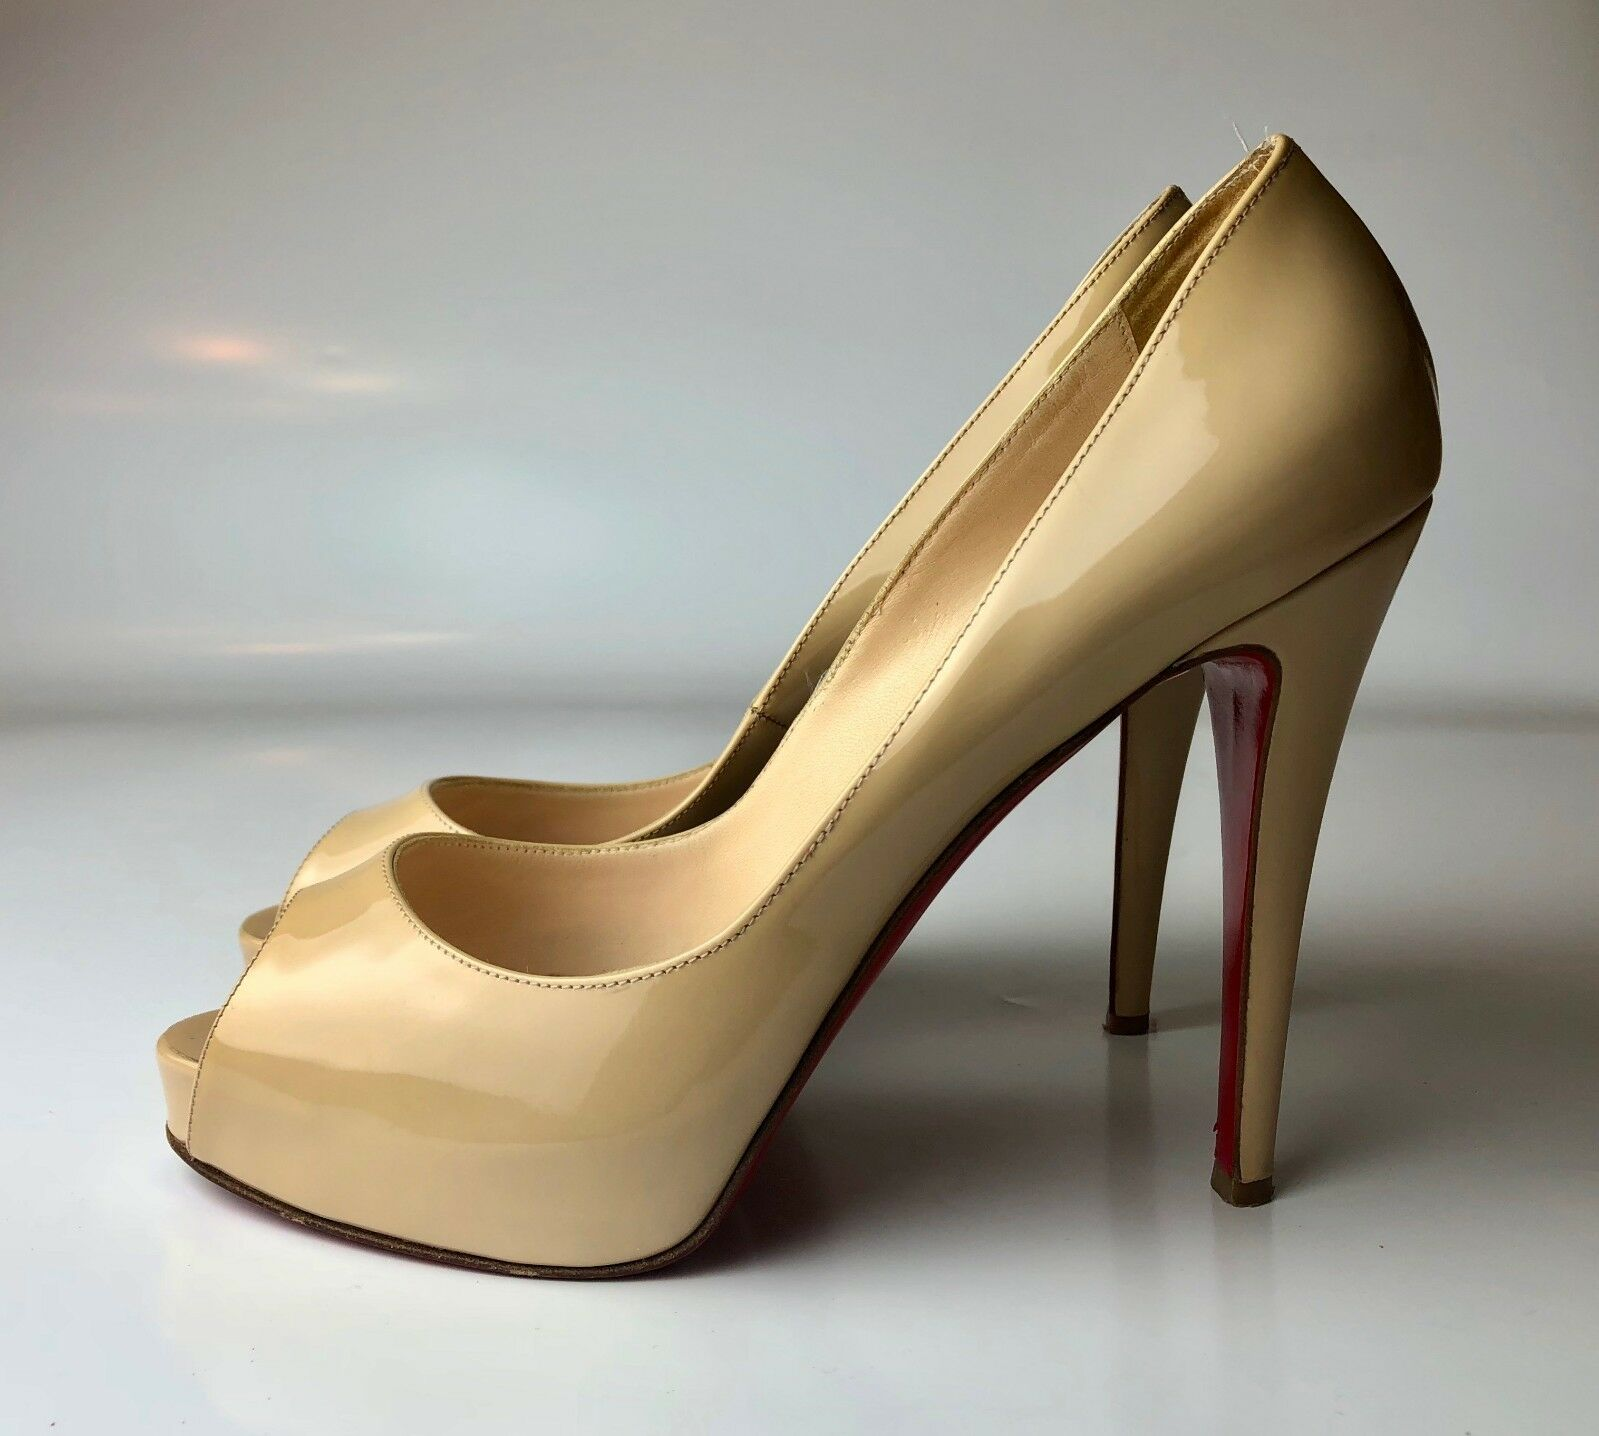 Christian Christian Christian Louboutin Very Prive 120 Cream Nude Patent Platform Pumps Euro 38.5 2a773b